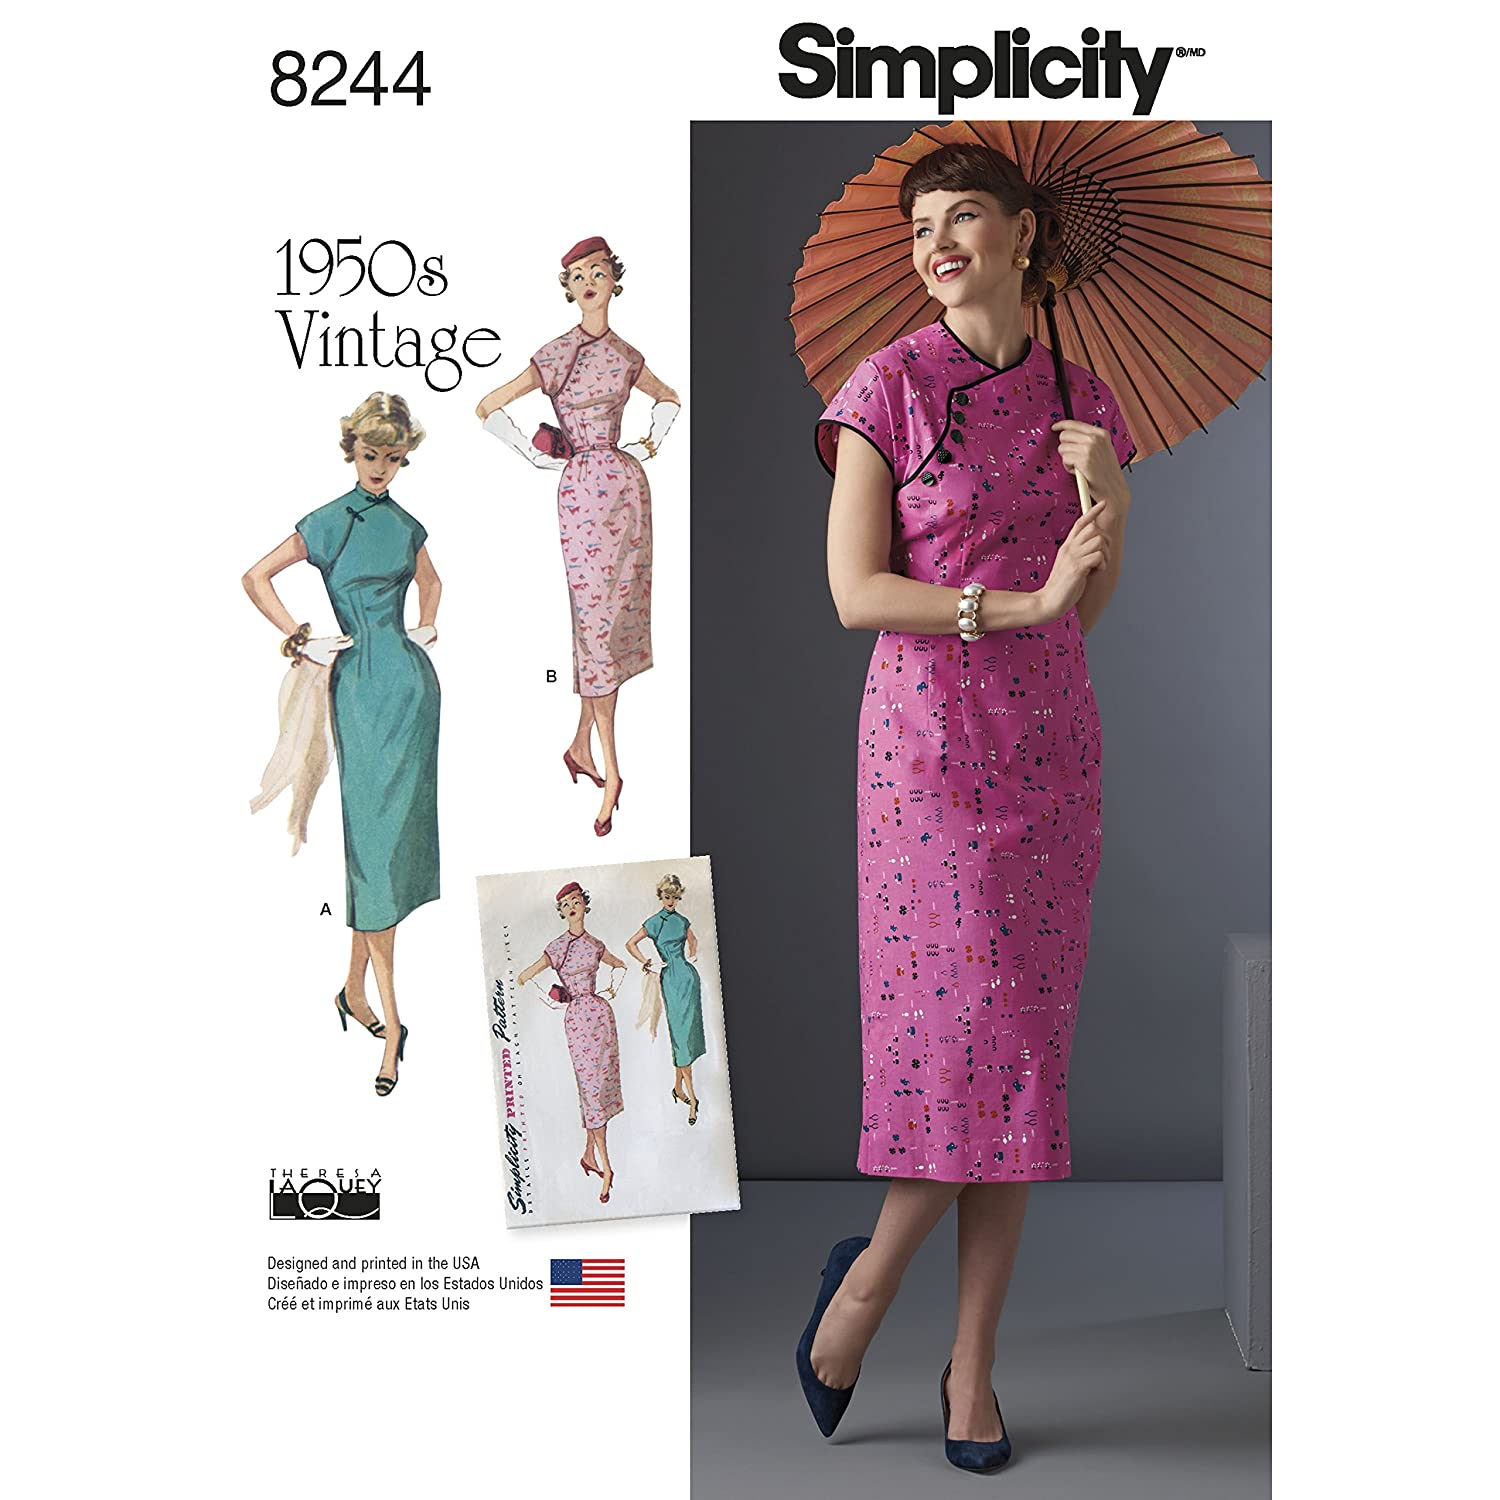 1950s Sewing Patterns- Dresses, Skirts, Tops, Pants Simplicity Creative Patterns US8244H5 8244 Simplicity Pattern 8244 Misses 1950s DressSize: H5 (6-8-10-12-14) $4.26 AT vintagedancer.com